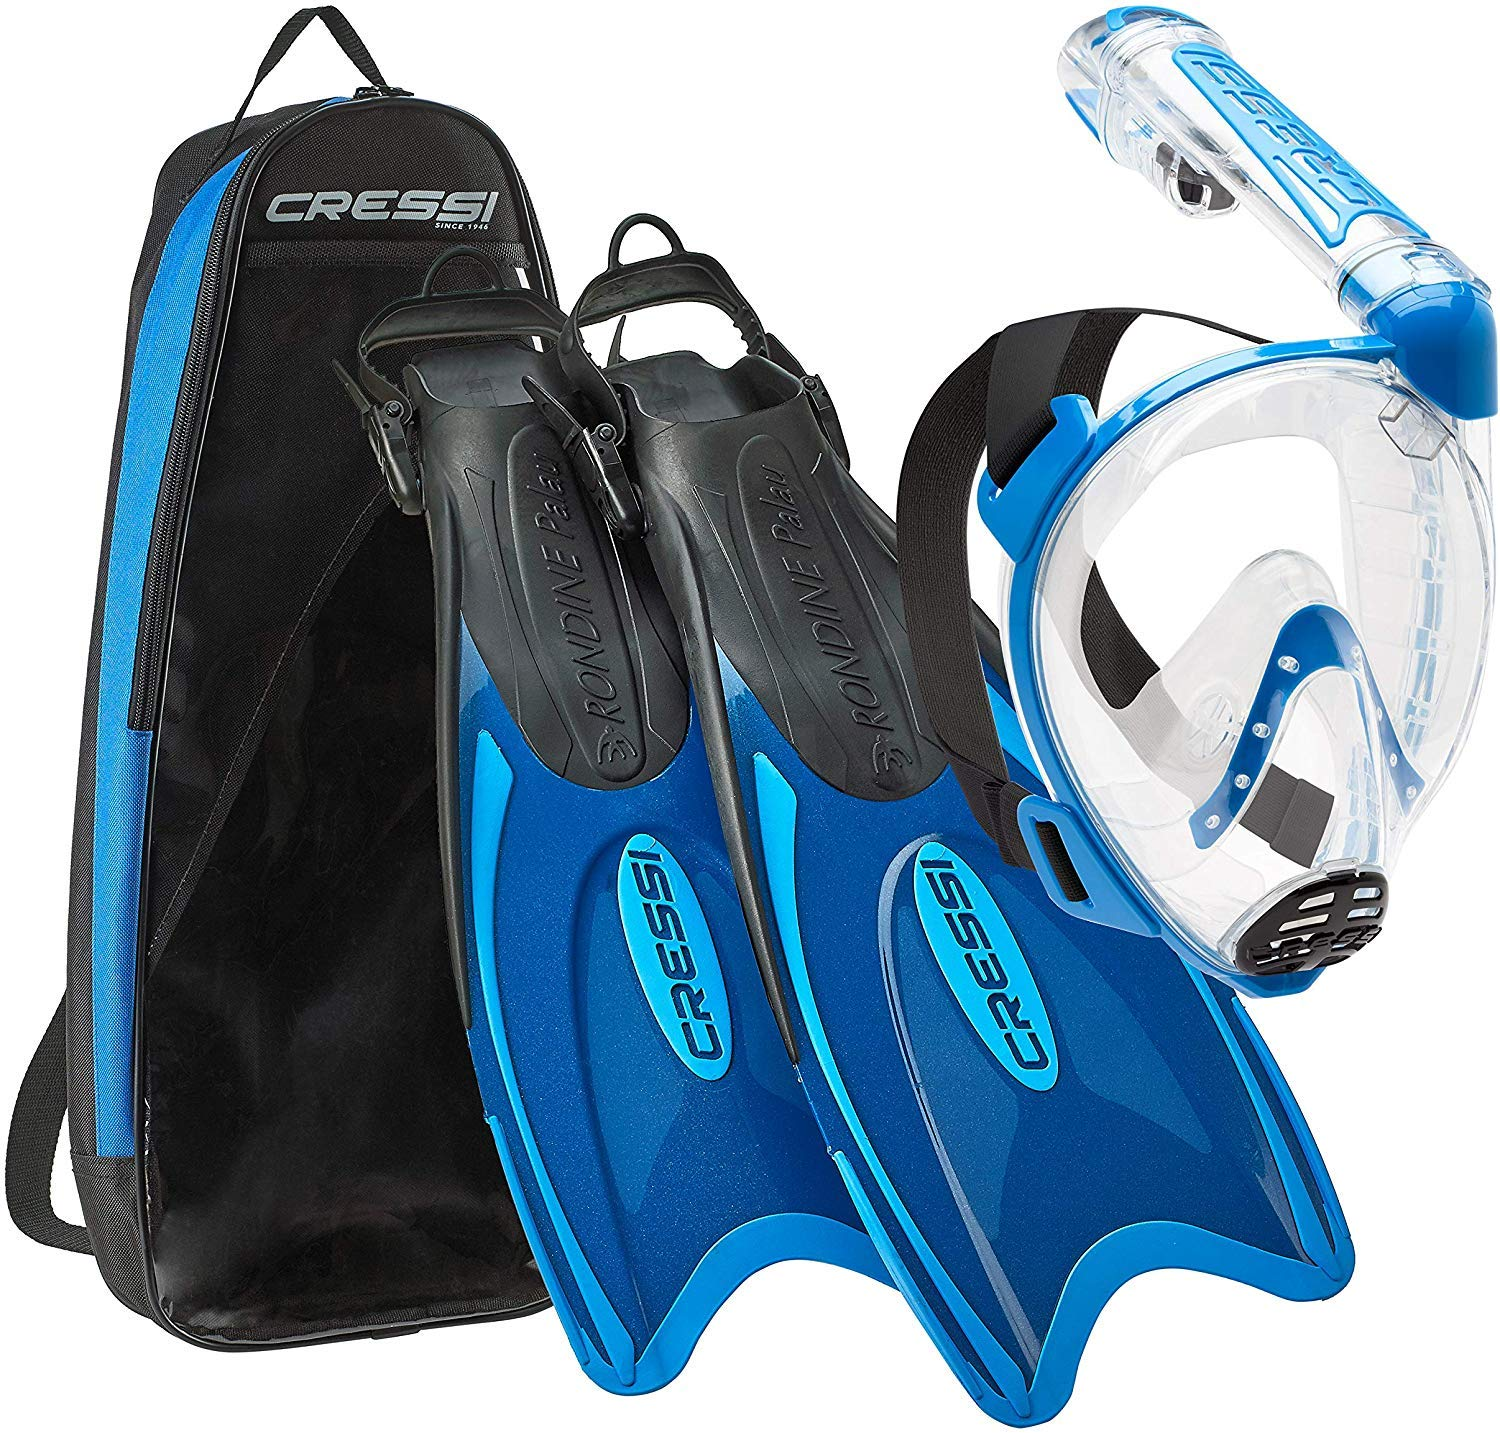 Cressi Italian Designed Premium 180° Full Face Snorkel Mask with Advanced Breathing System - Panoramic Side Snorkel Set Design - and Palau Long Snorkeling Fins and Snorkel Set Gear Bag, Blue - SM by Cressi